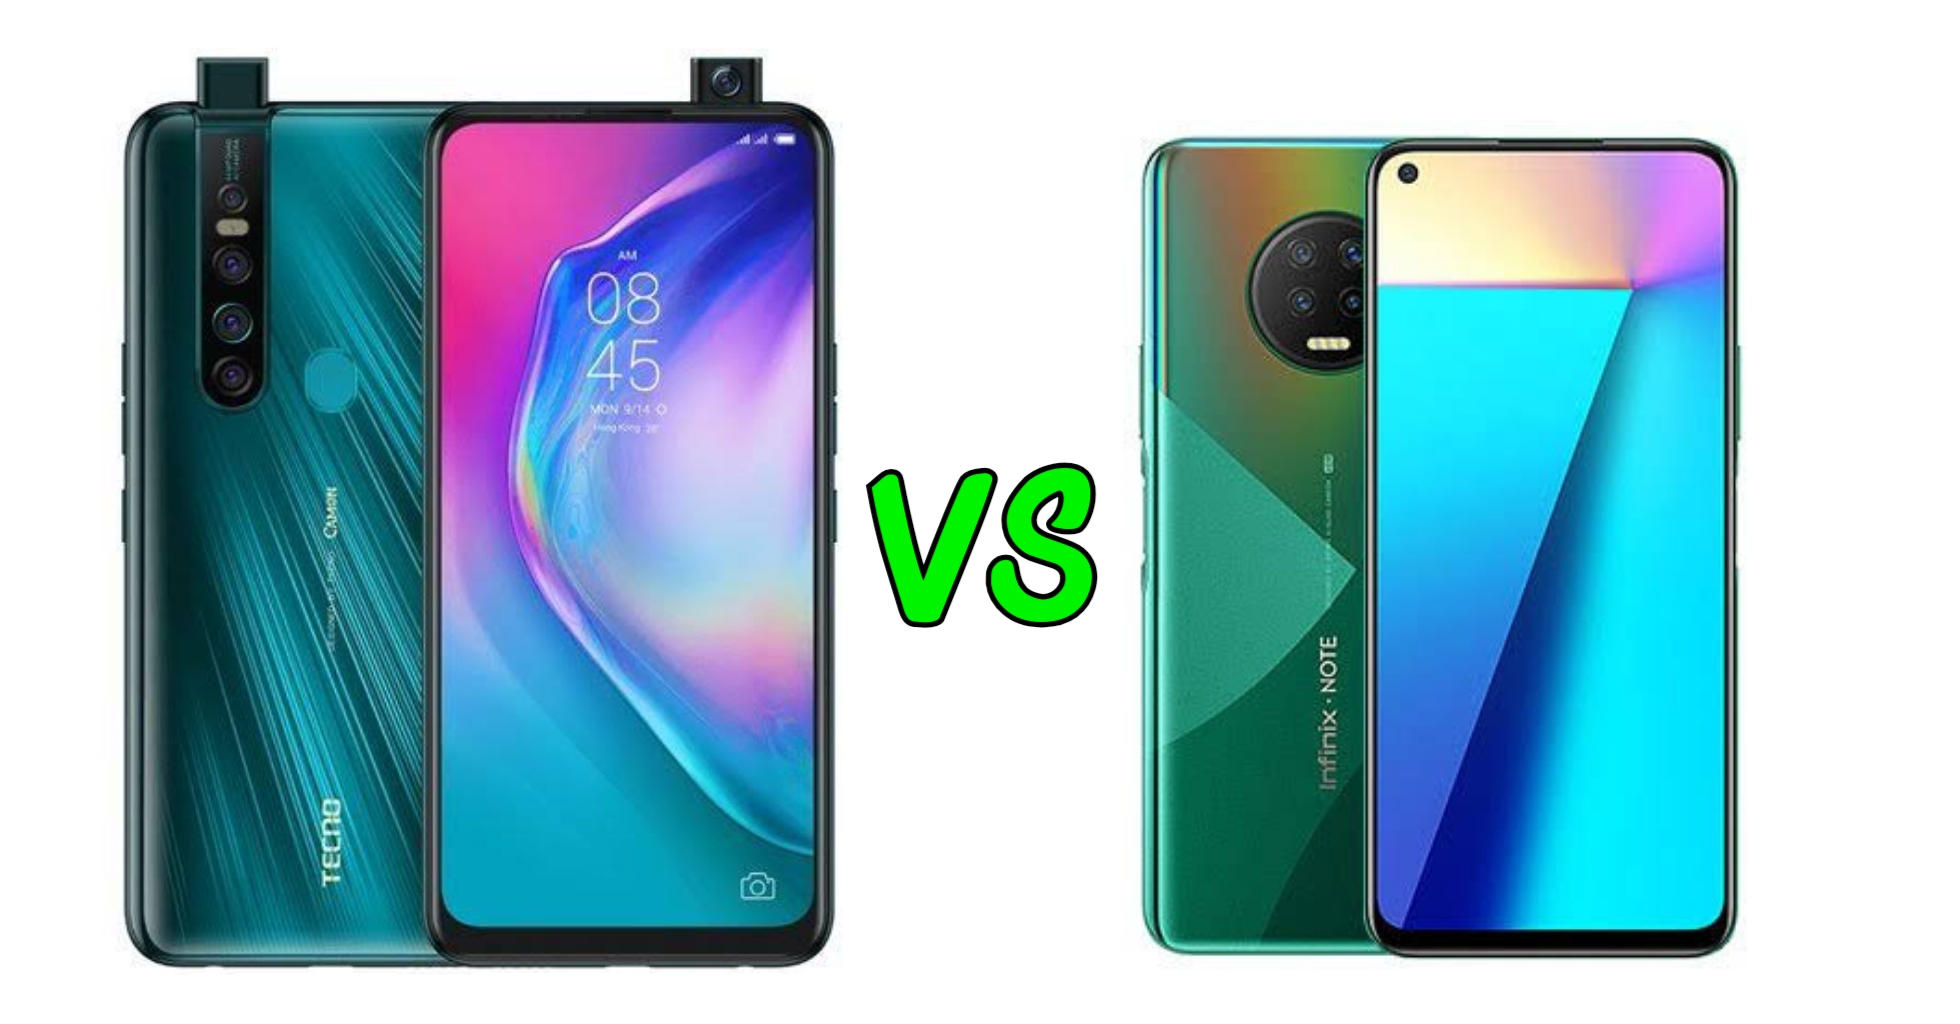 Camon 15 premier Vs Infinix Note 7